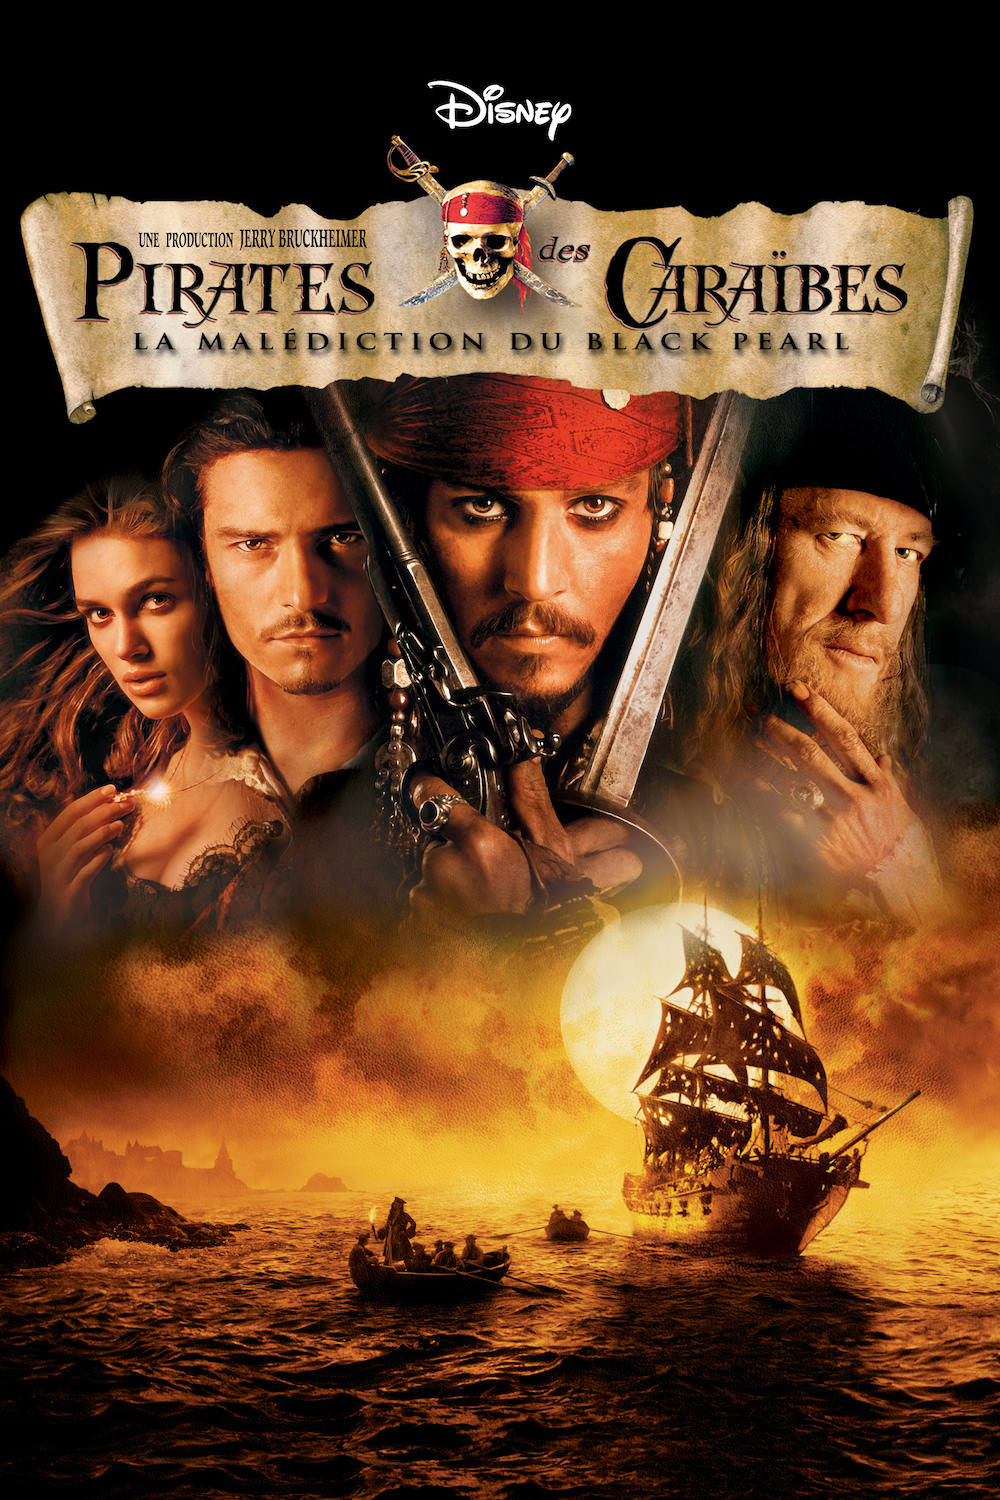 Pirates des caraibes malediction black pearl verbinski